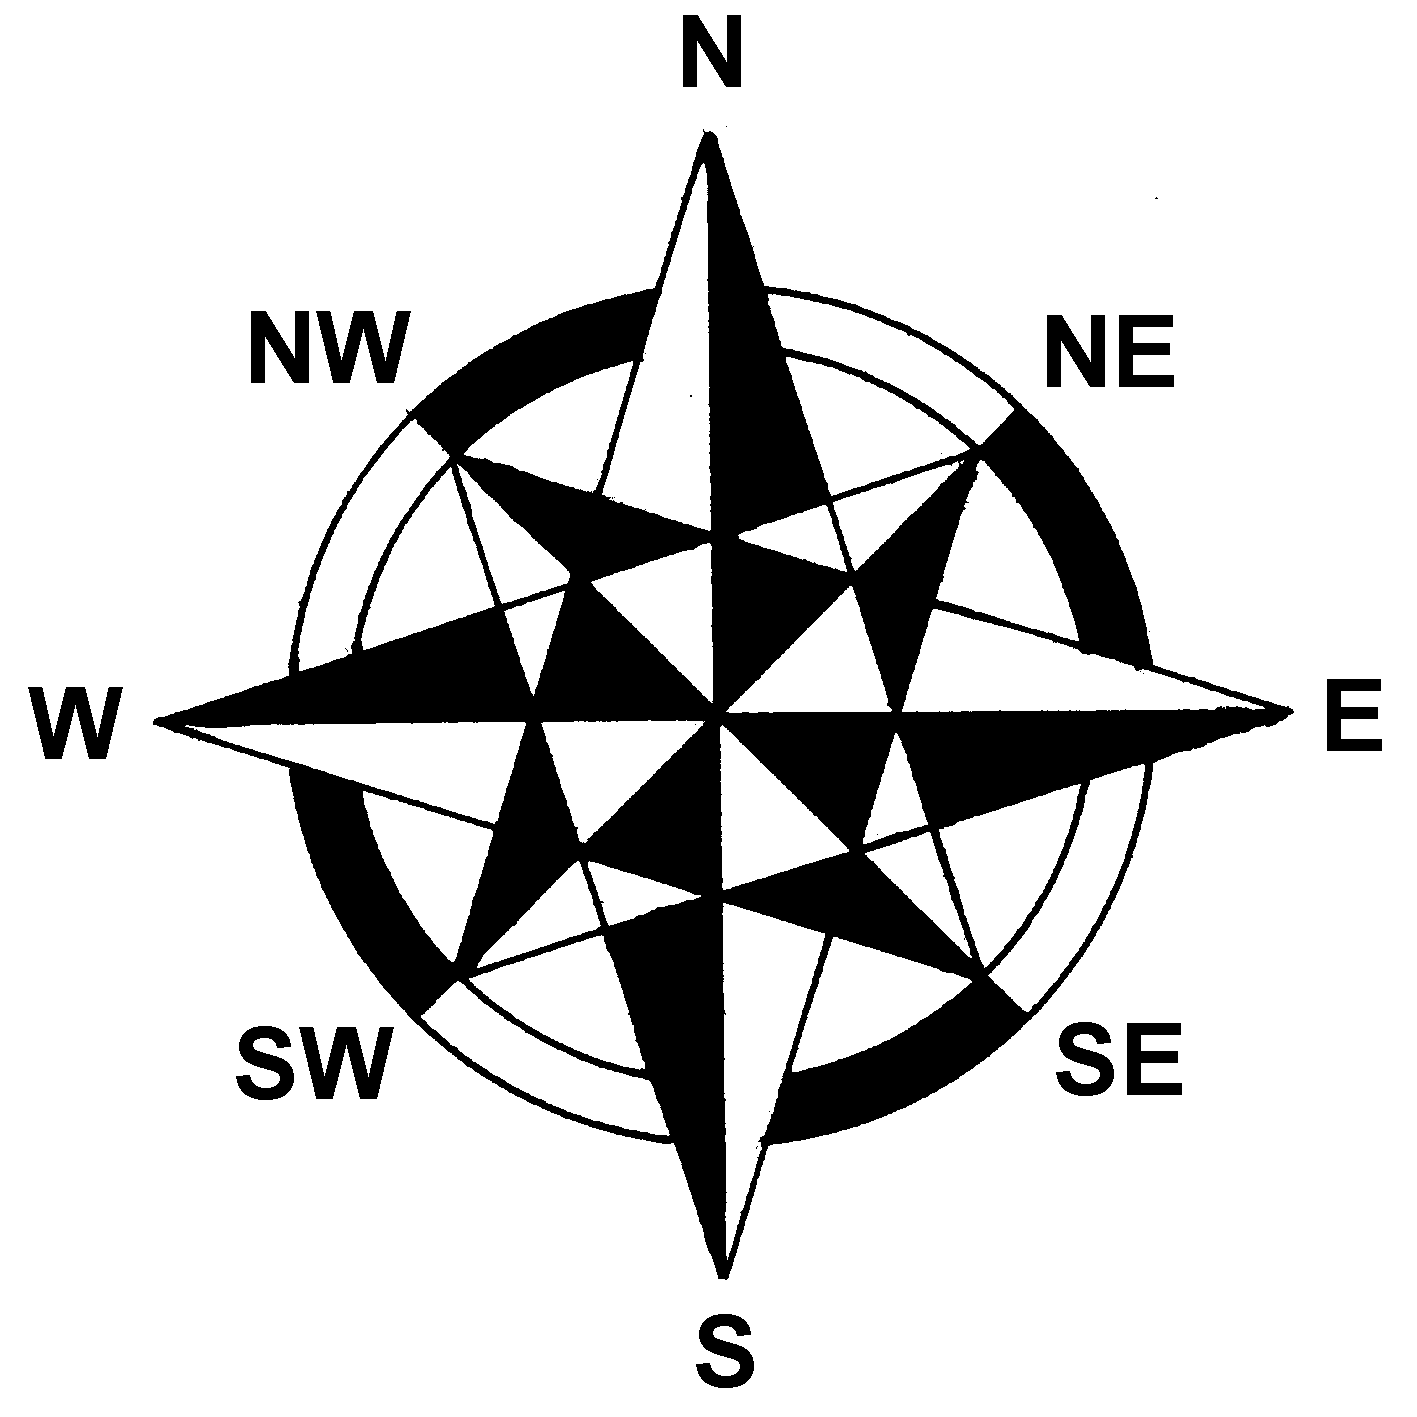 https://i1.wp.com/cnx.org/content/m25276/latest/Compass_T_E.png